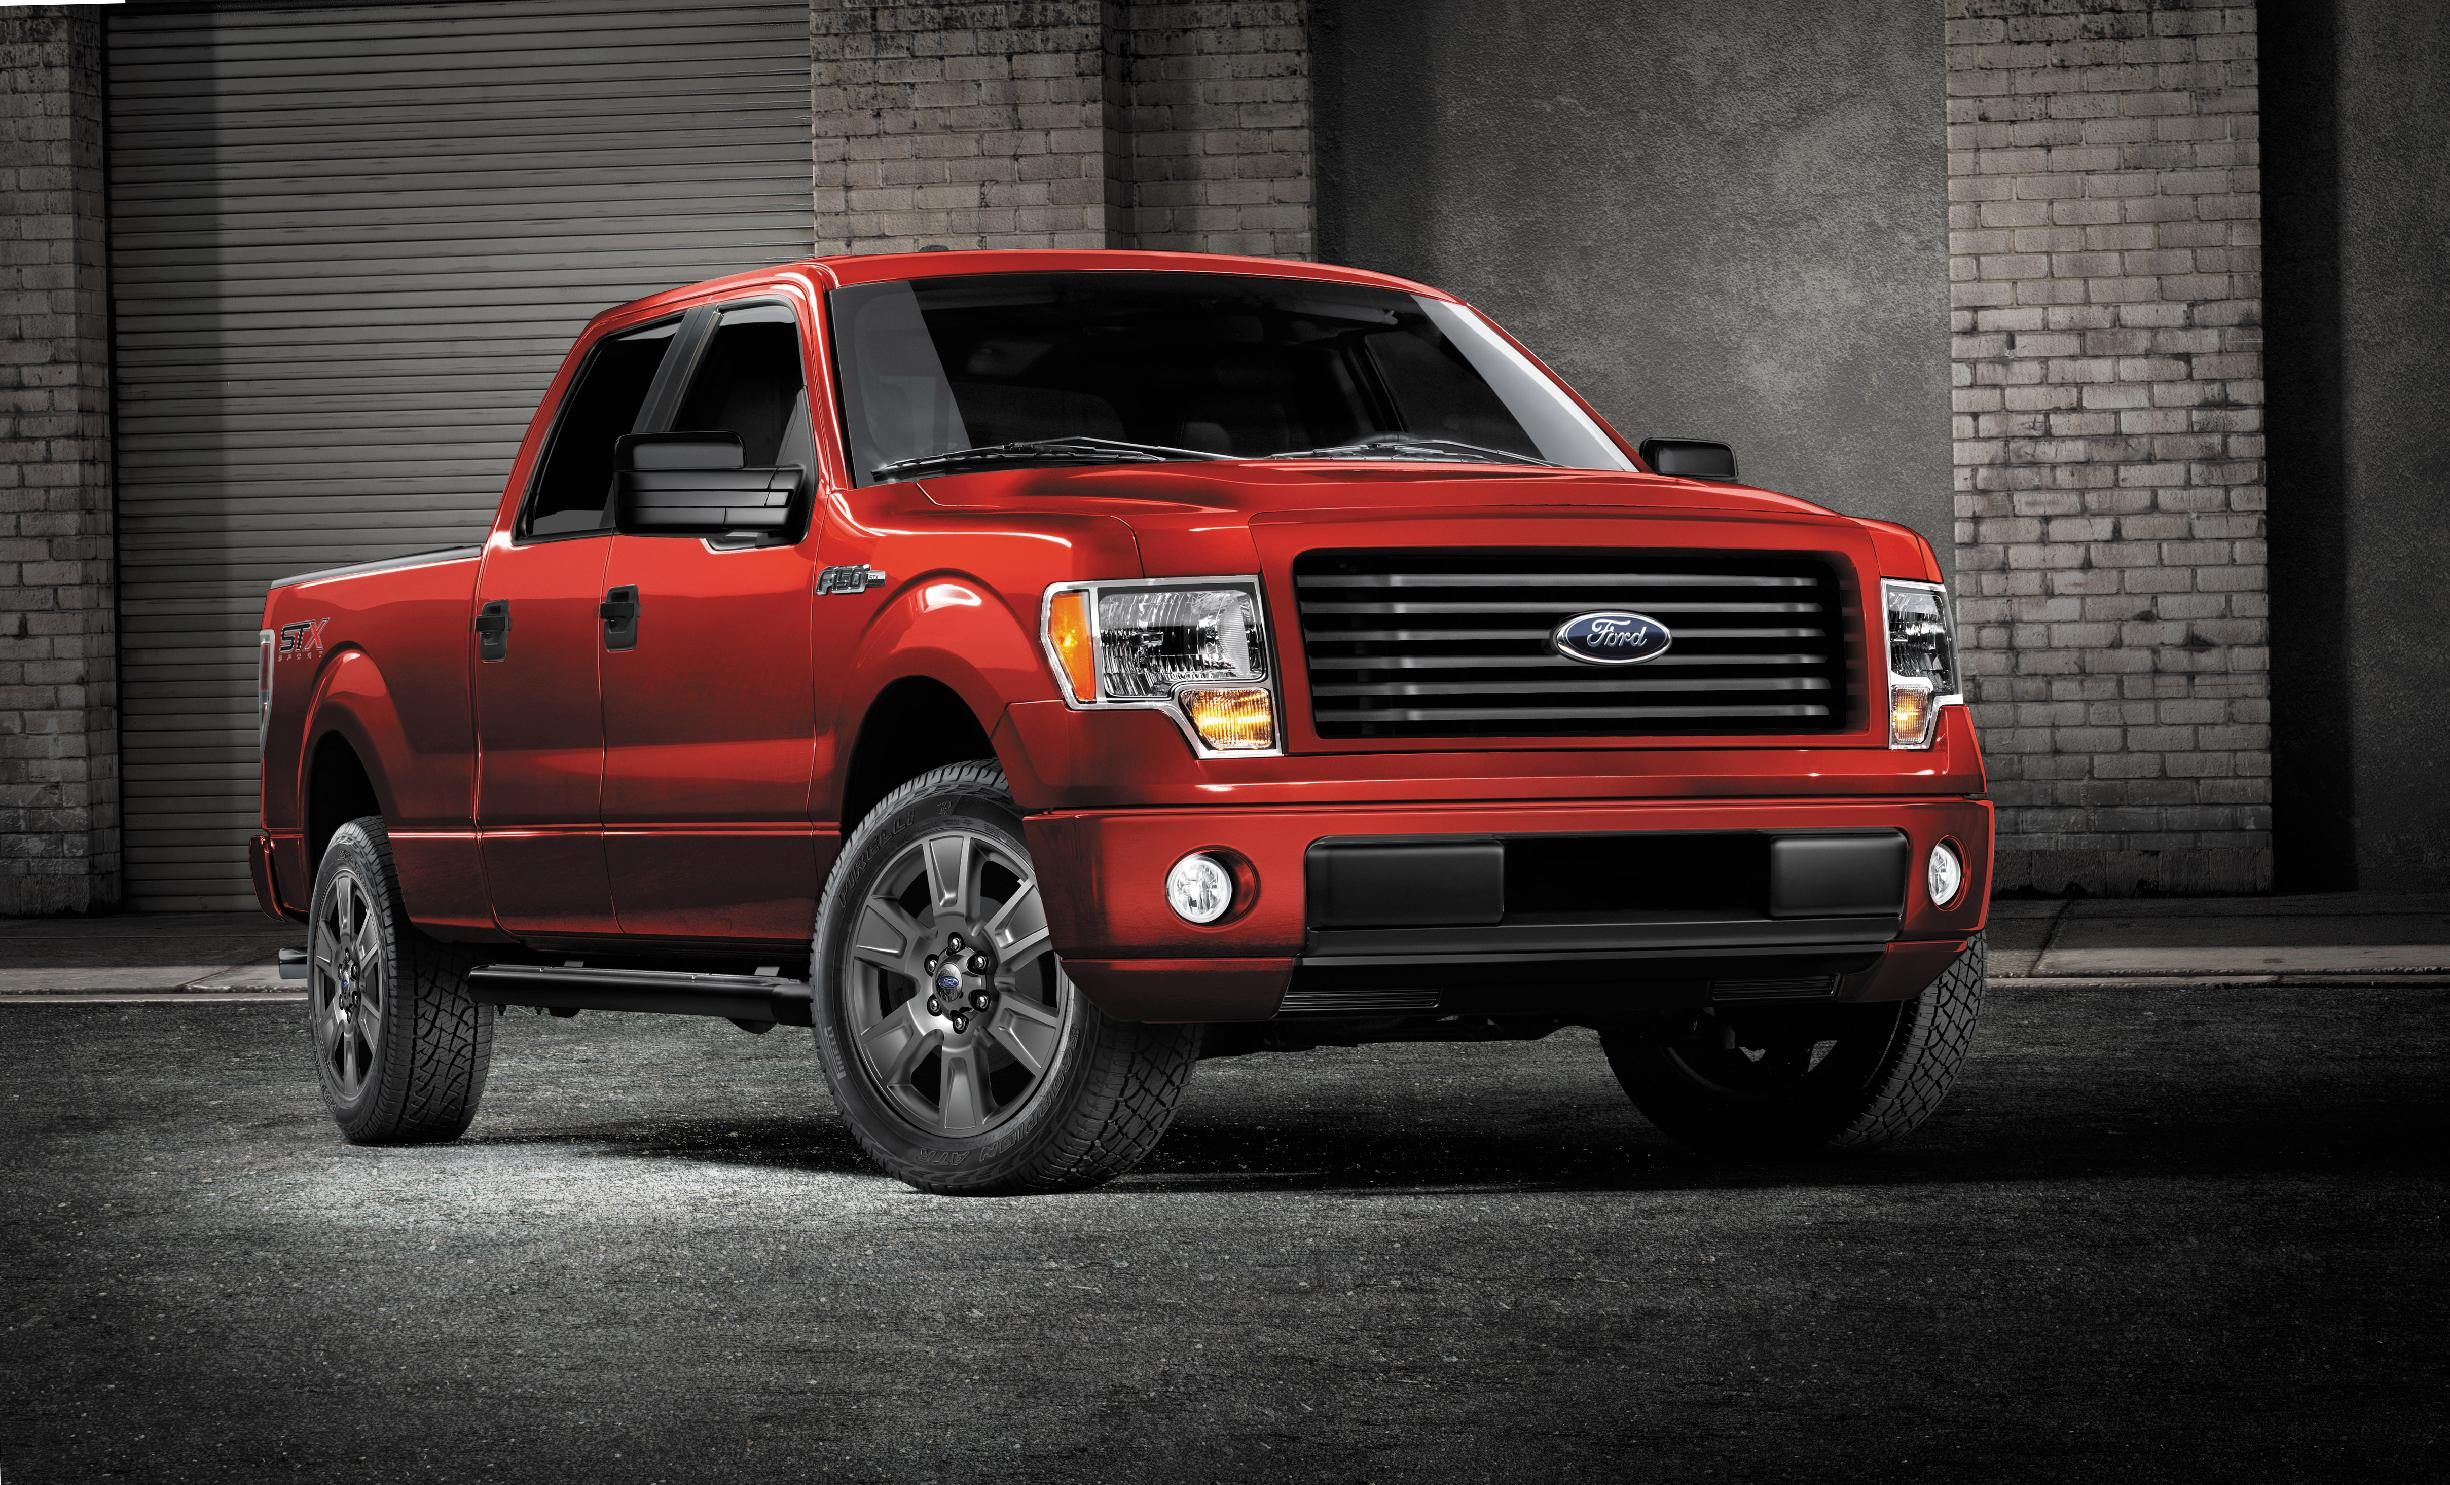 FILE - This undated file image provided by Ford shows the 2014 Ford F-150 STX SuperCrew truck. Ford on Tuesday, Nov. 4, 2014 announced it is recalling more than 202,000 vehicles in North America, including about 135,000 F-150 pickups and Ford Flex family haulers from the 2014 model year, to fix gas leaks, air bag sensors, stalling and other issues. (AP Photo/Ford, File)